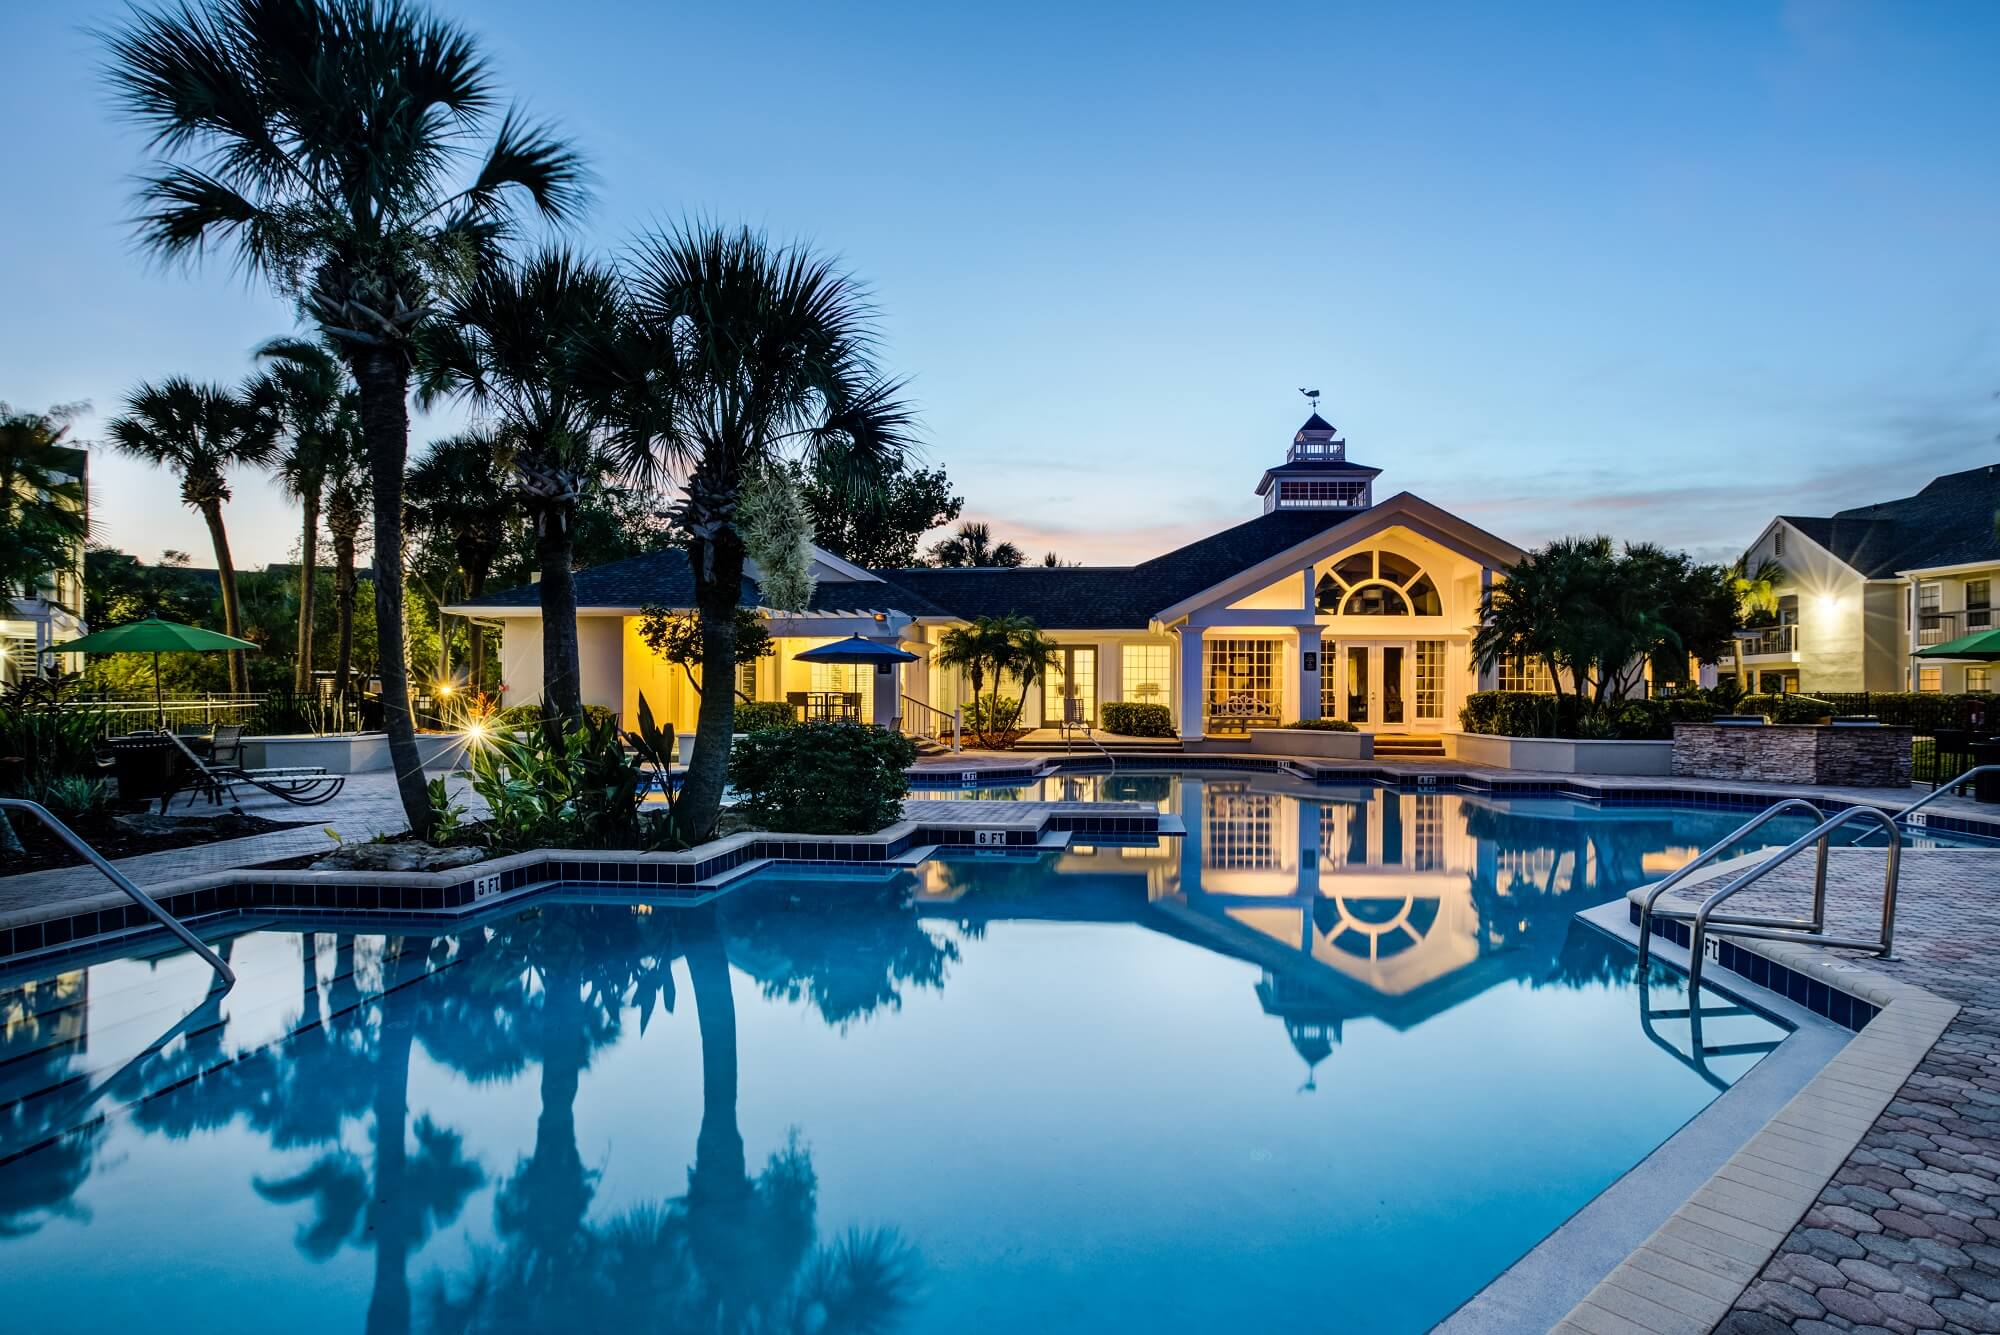 night time pool view with palm trees, lounge chairs, and view of clubhouse.